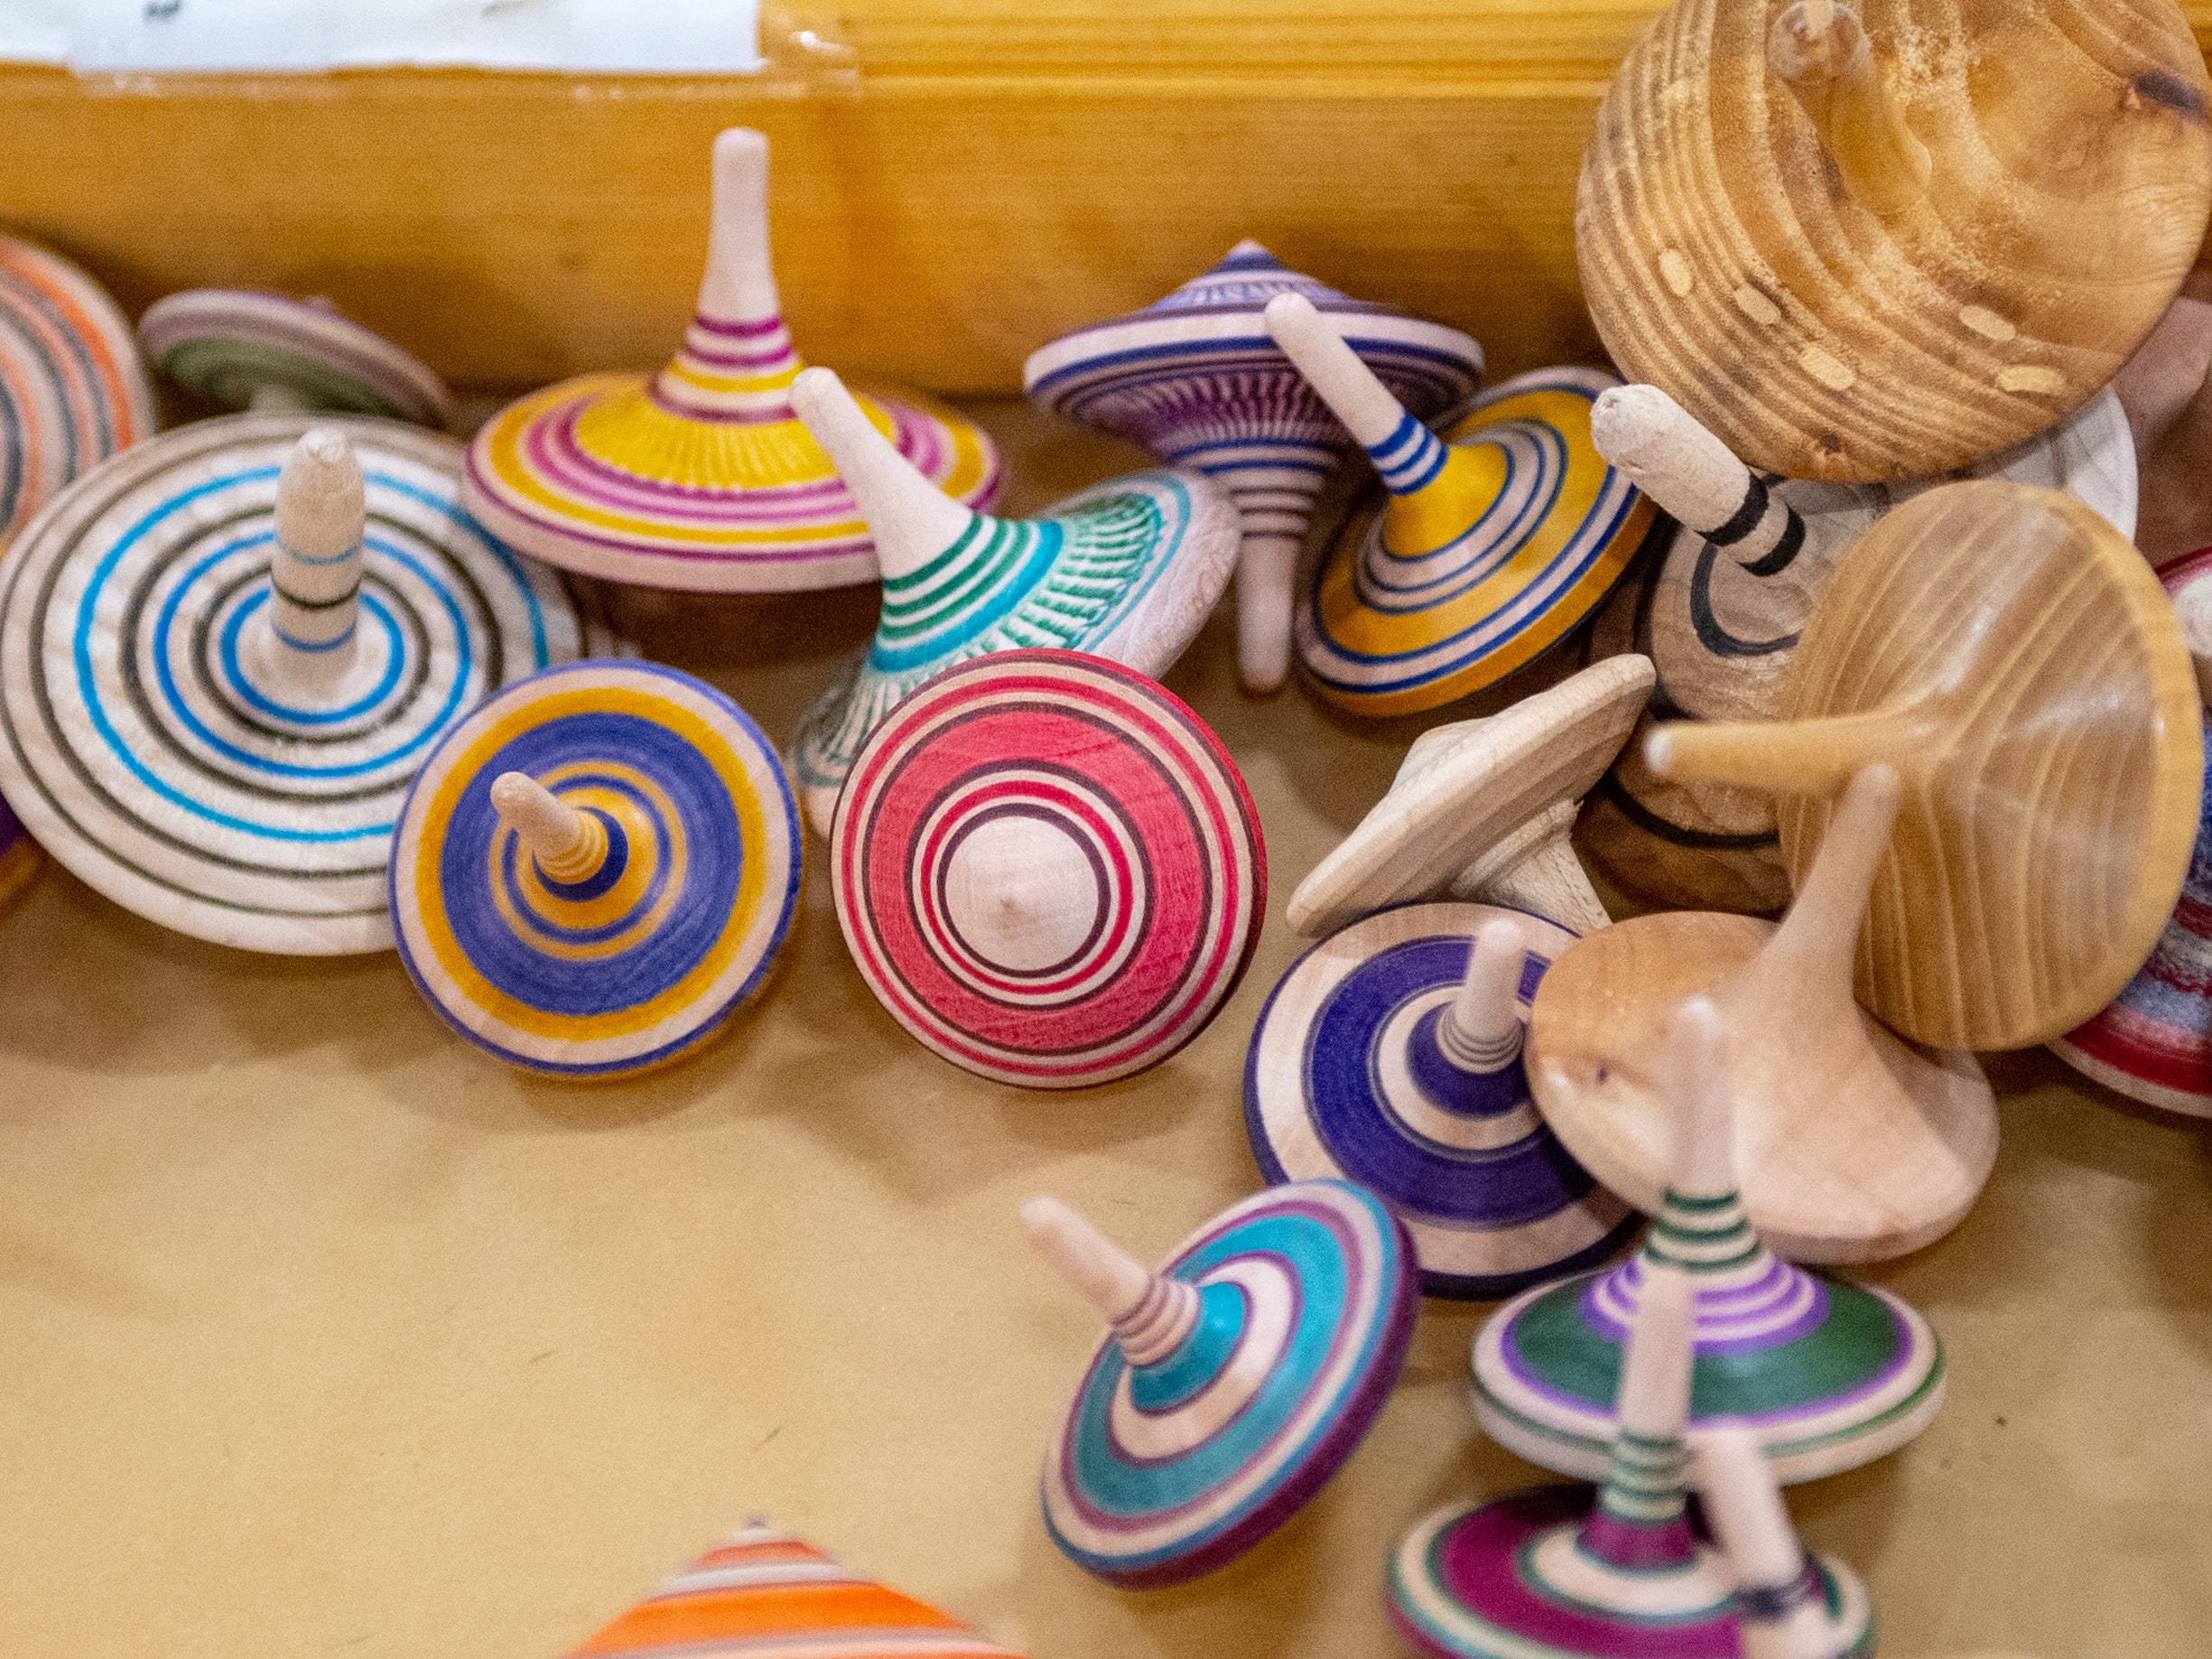 Handmade spinning tops are on sale at the 2019 Home & Garden Show, February 8, 2019.